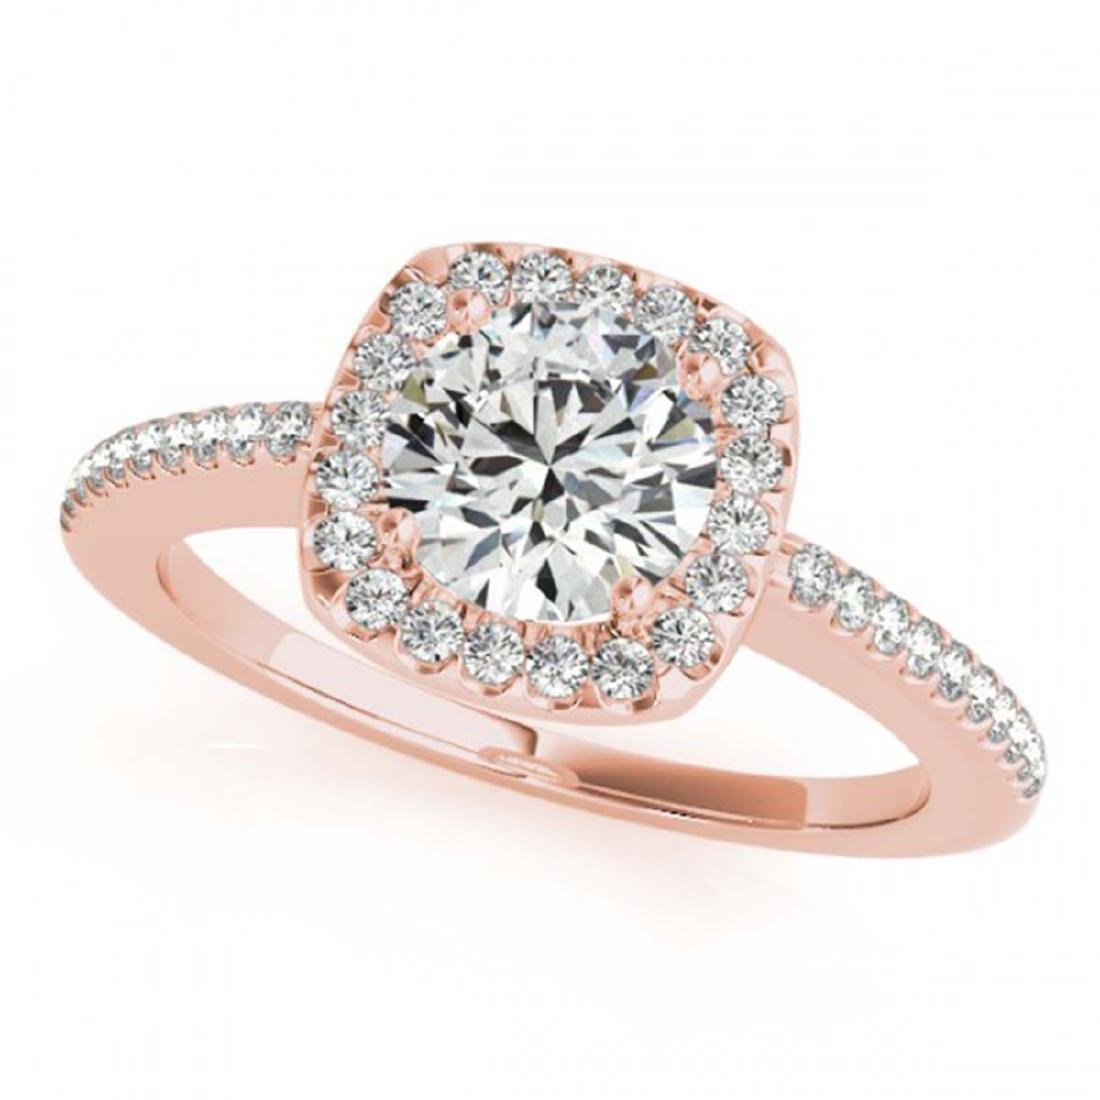 1.01 ctw VS/SI Diamond Solitaire Halo Ring 14K Rose